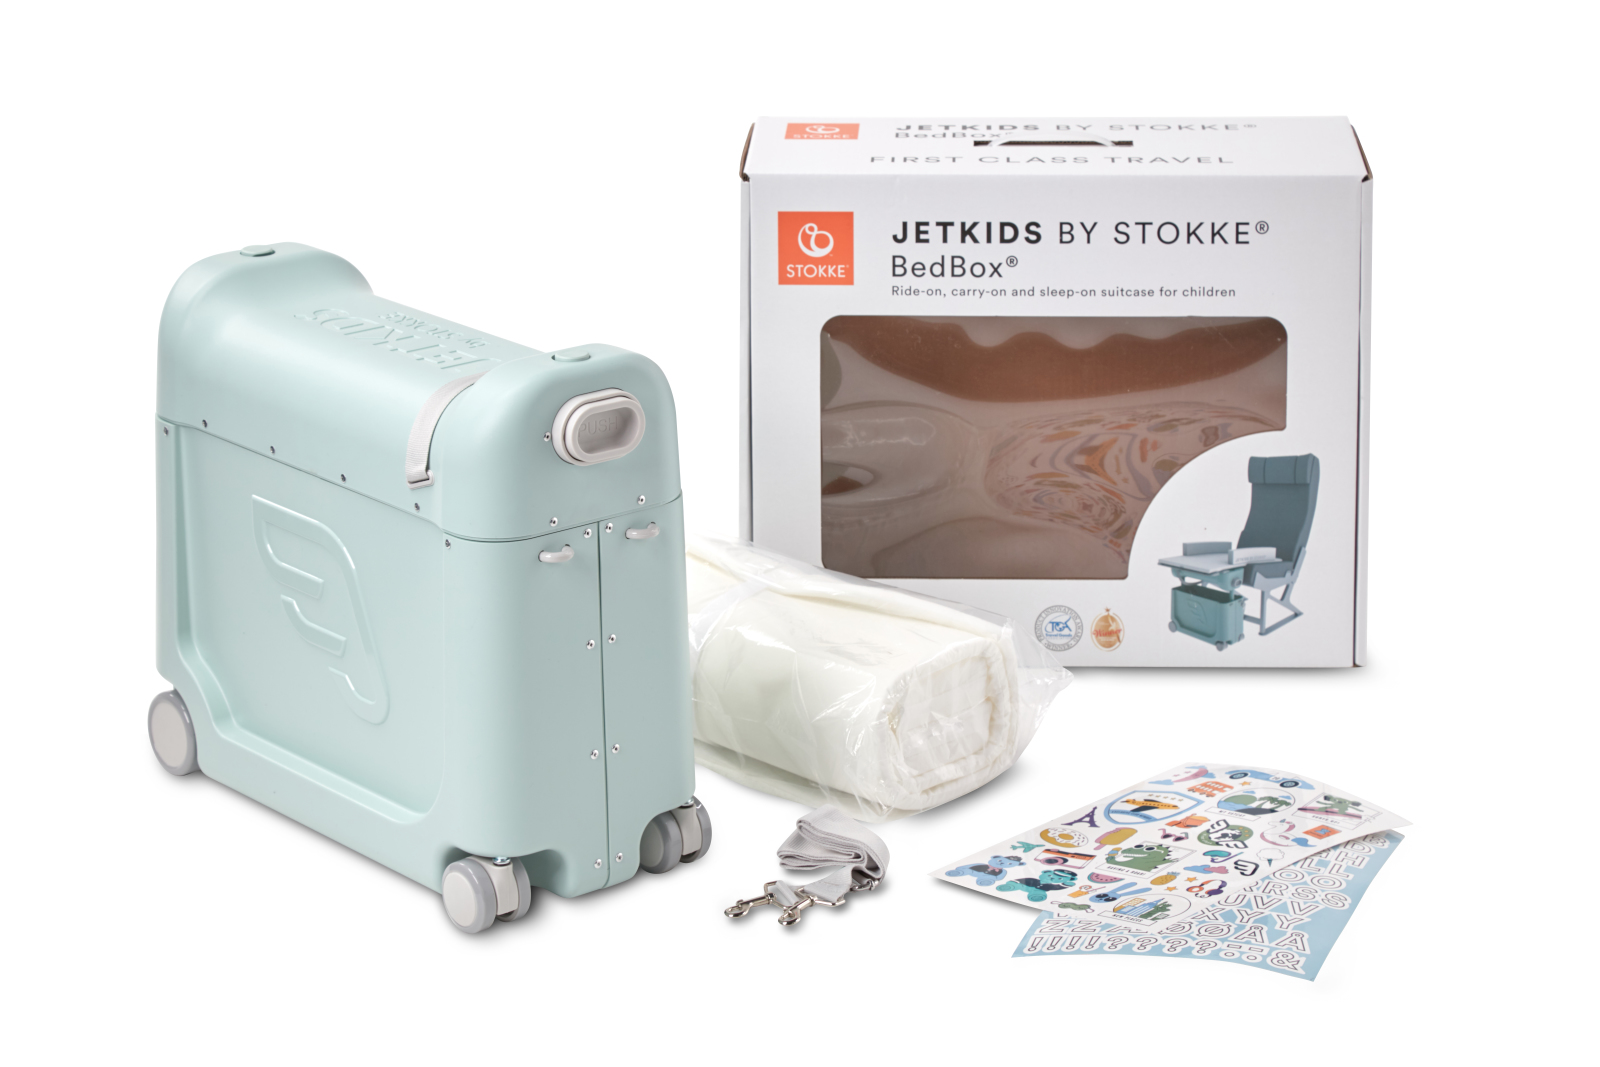 JetKids by Stokke® BedBox Green Aurora, packaging.